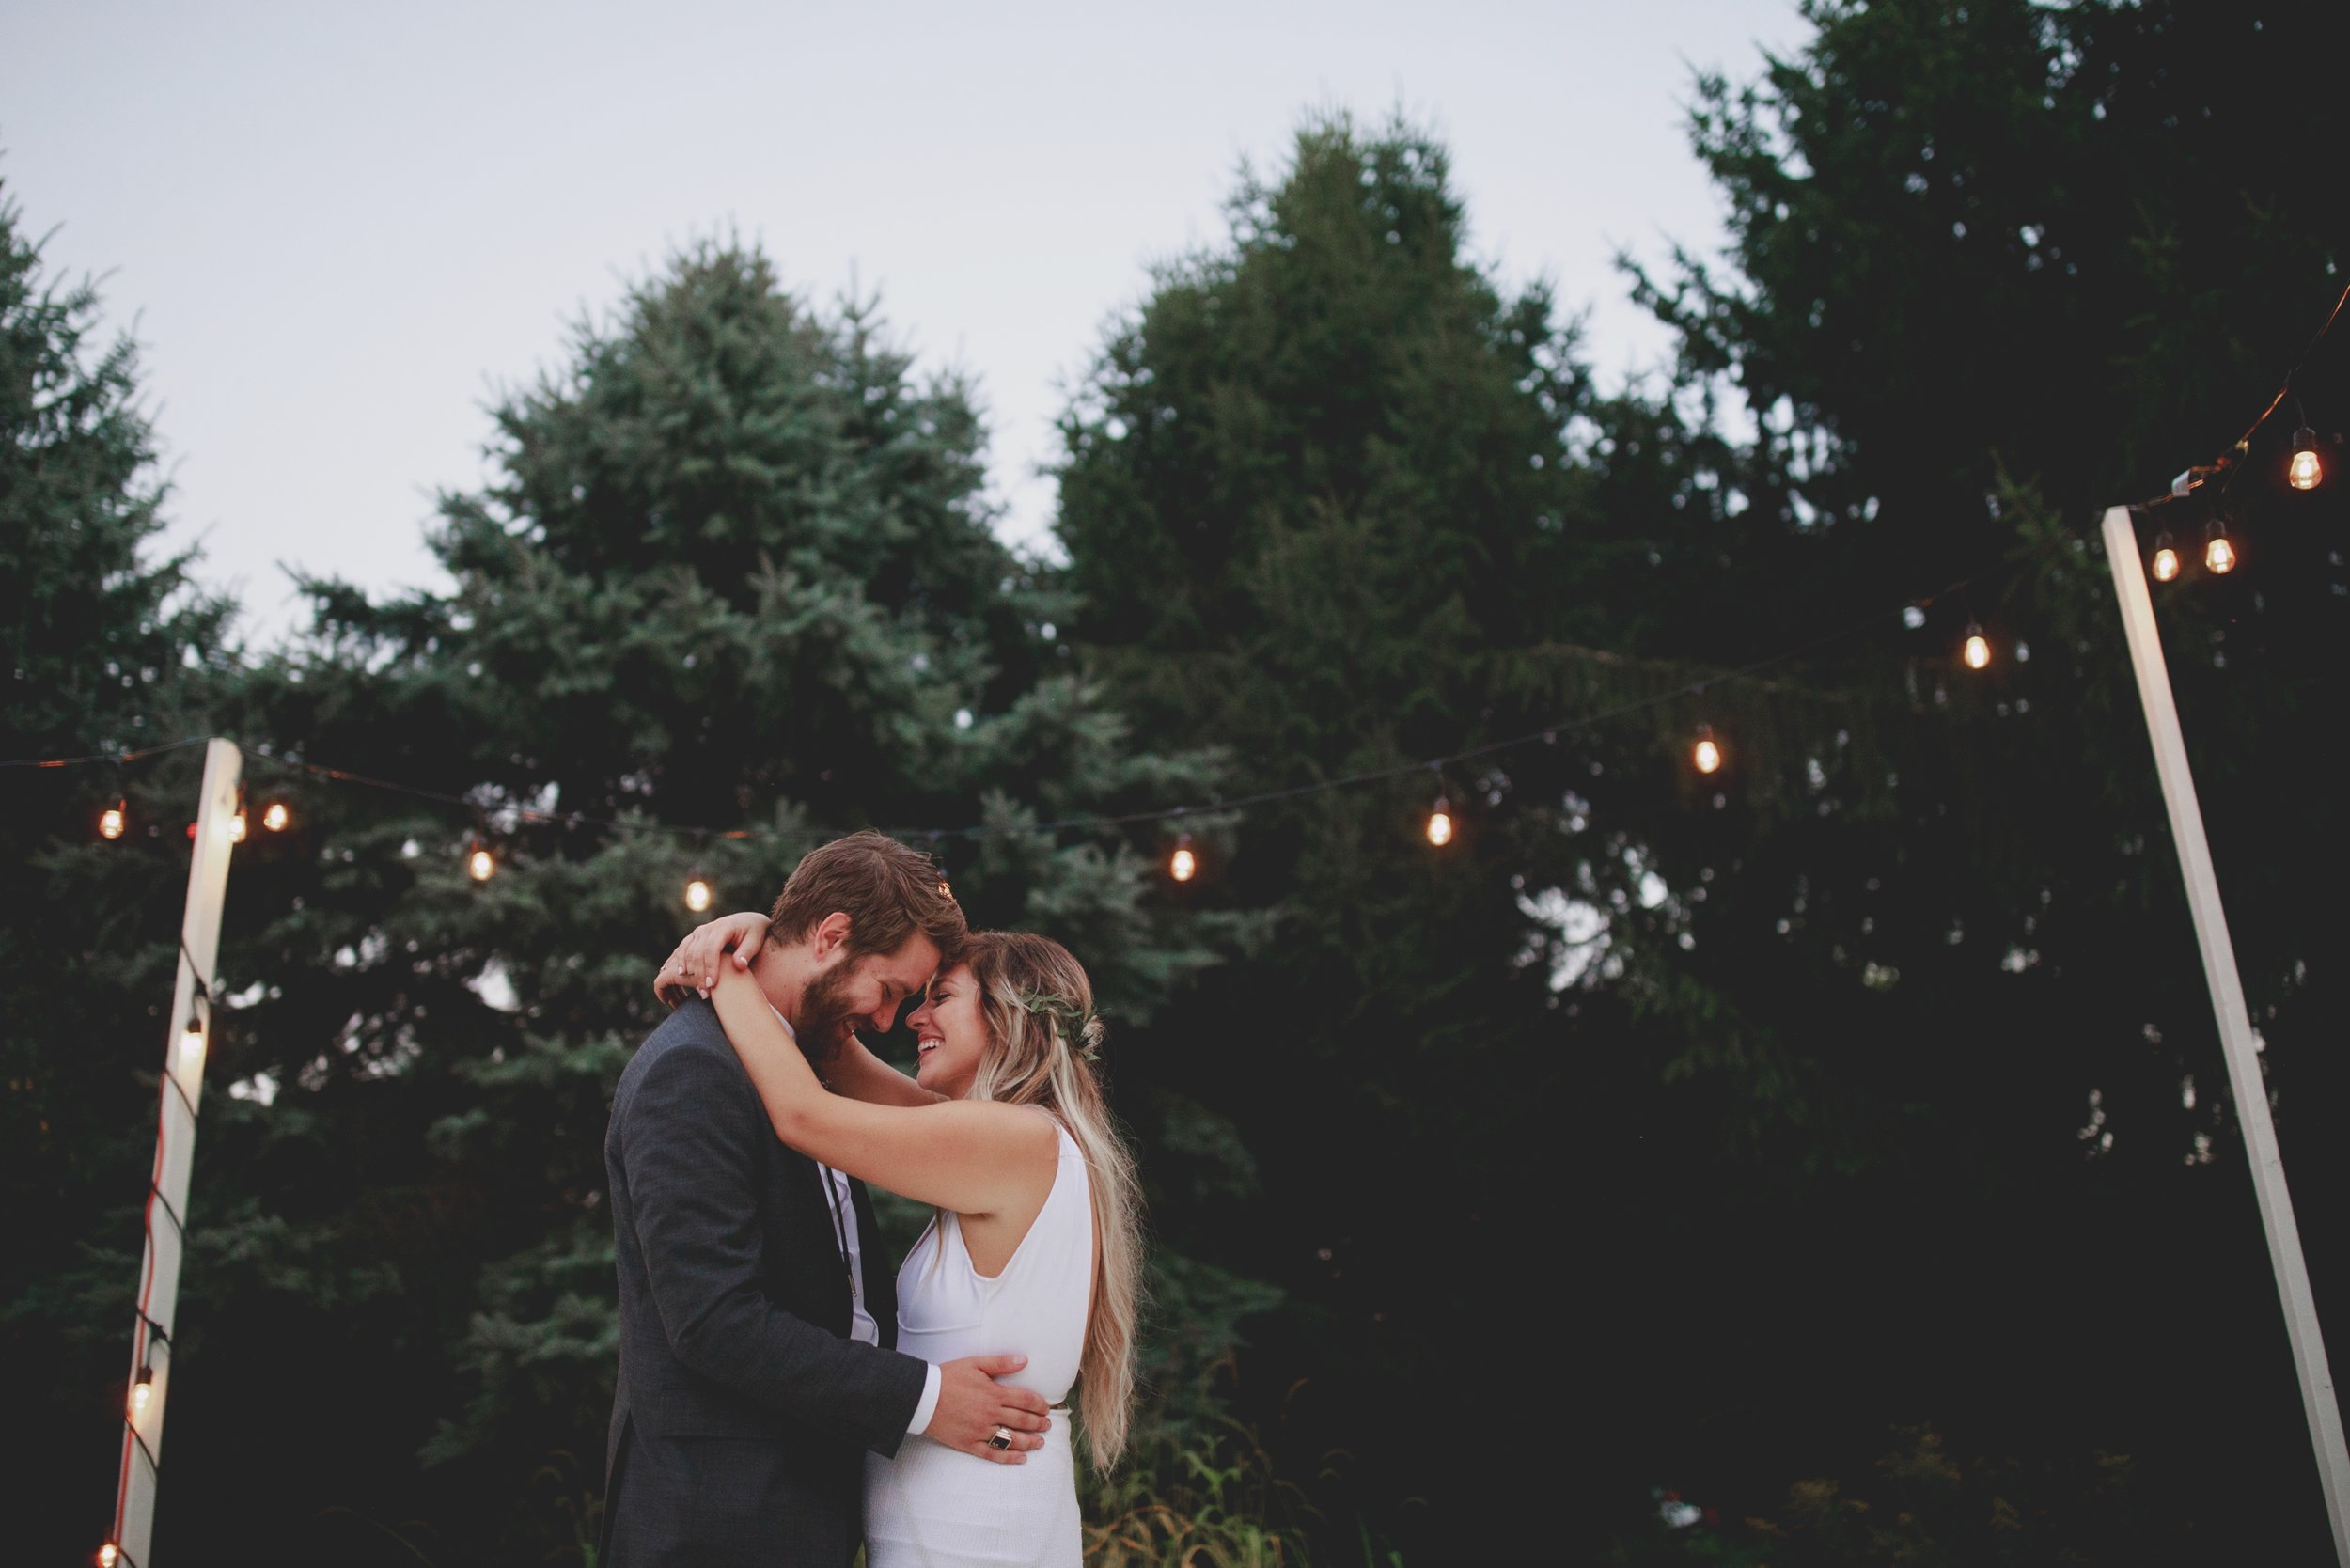 amanda_vanvels_grand_rapids_farm_barn_wedding_128.jpg